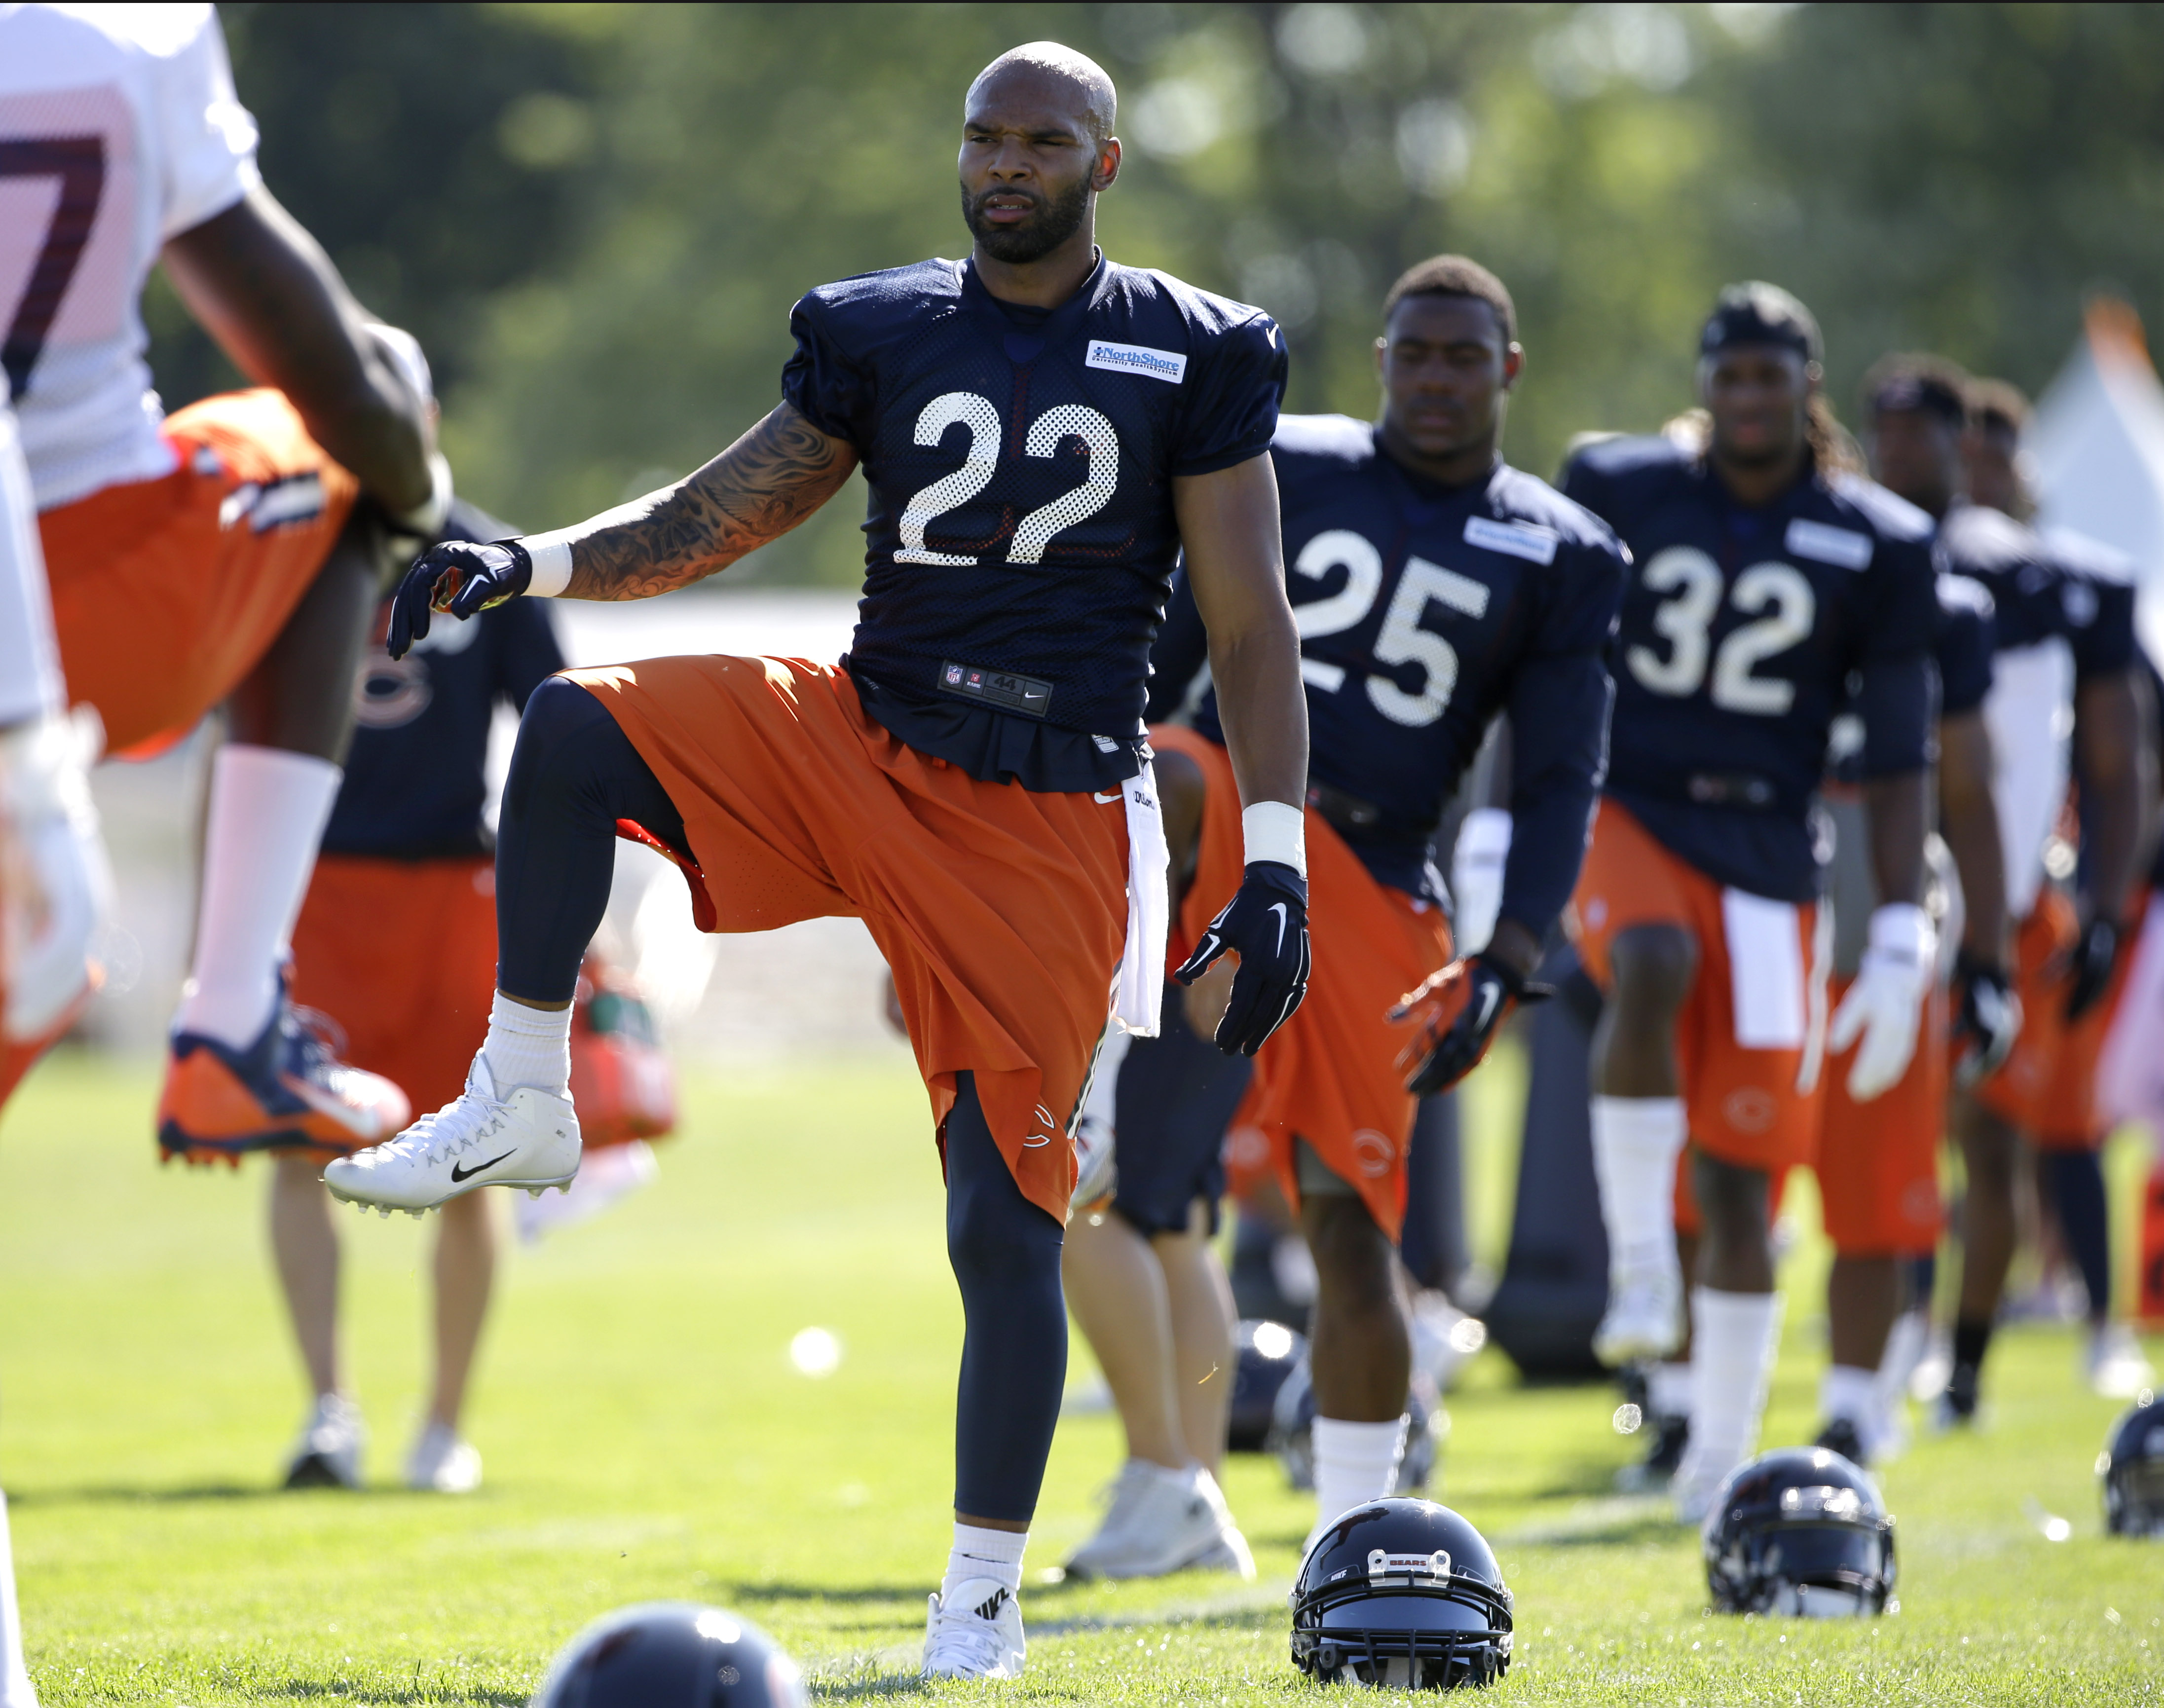 Chicago Bears runningback Matte Forte (22) stretches with teammates during an NFL football training camp at Olivet Nazarene University, Thursday, July 30, 2015, in Bourbonnais, Ill. (AP Photo/Nam Y. Huh)